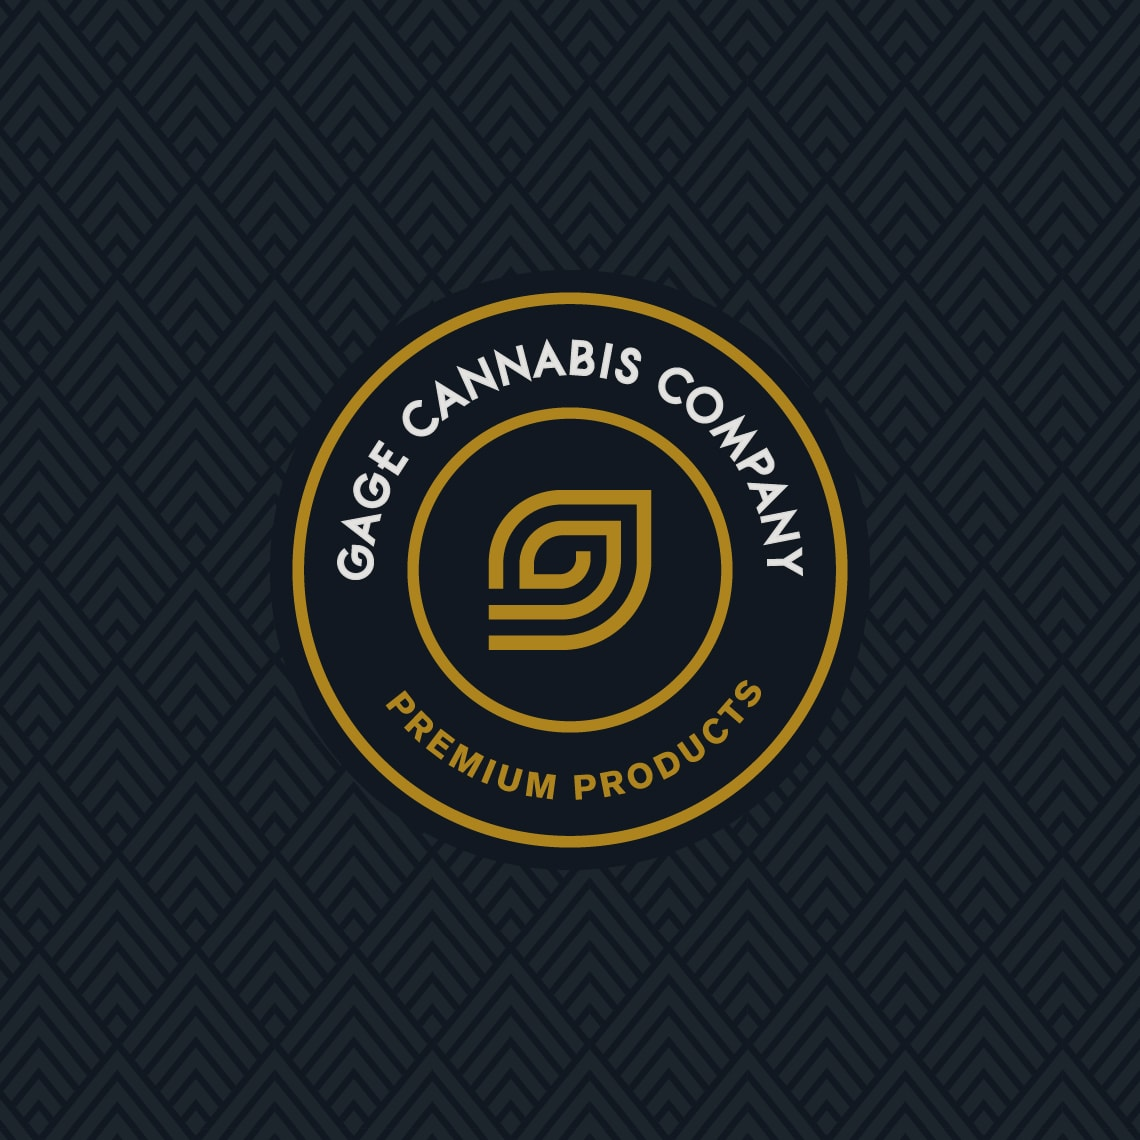 Gage Cannabis Dispensary Logo Design